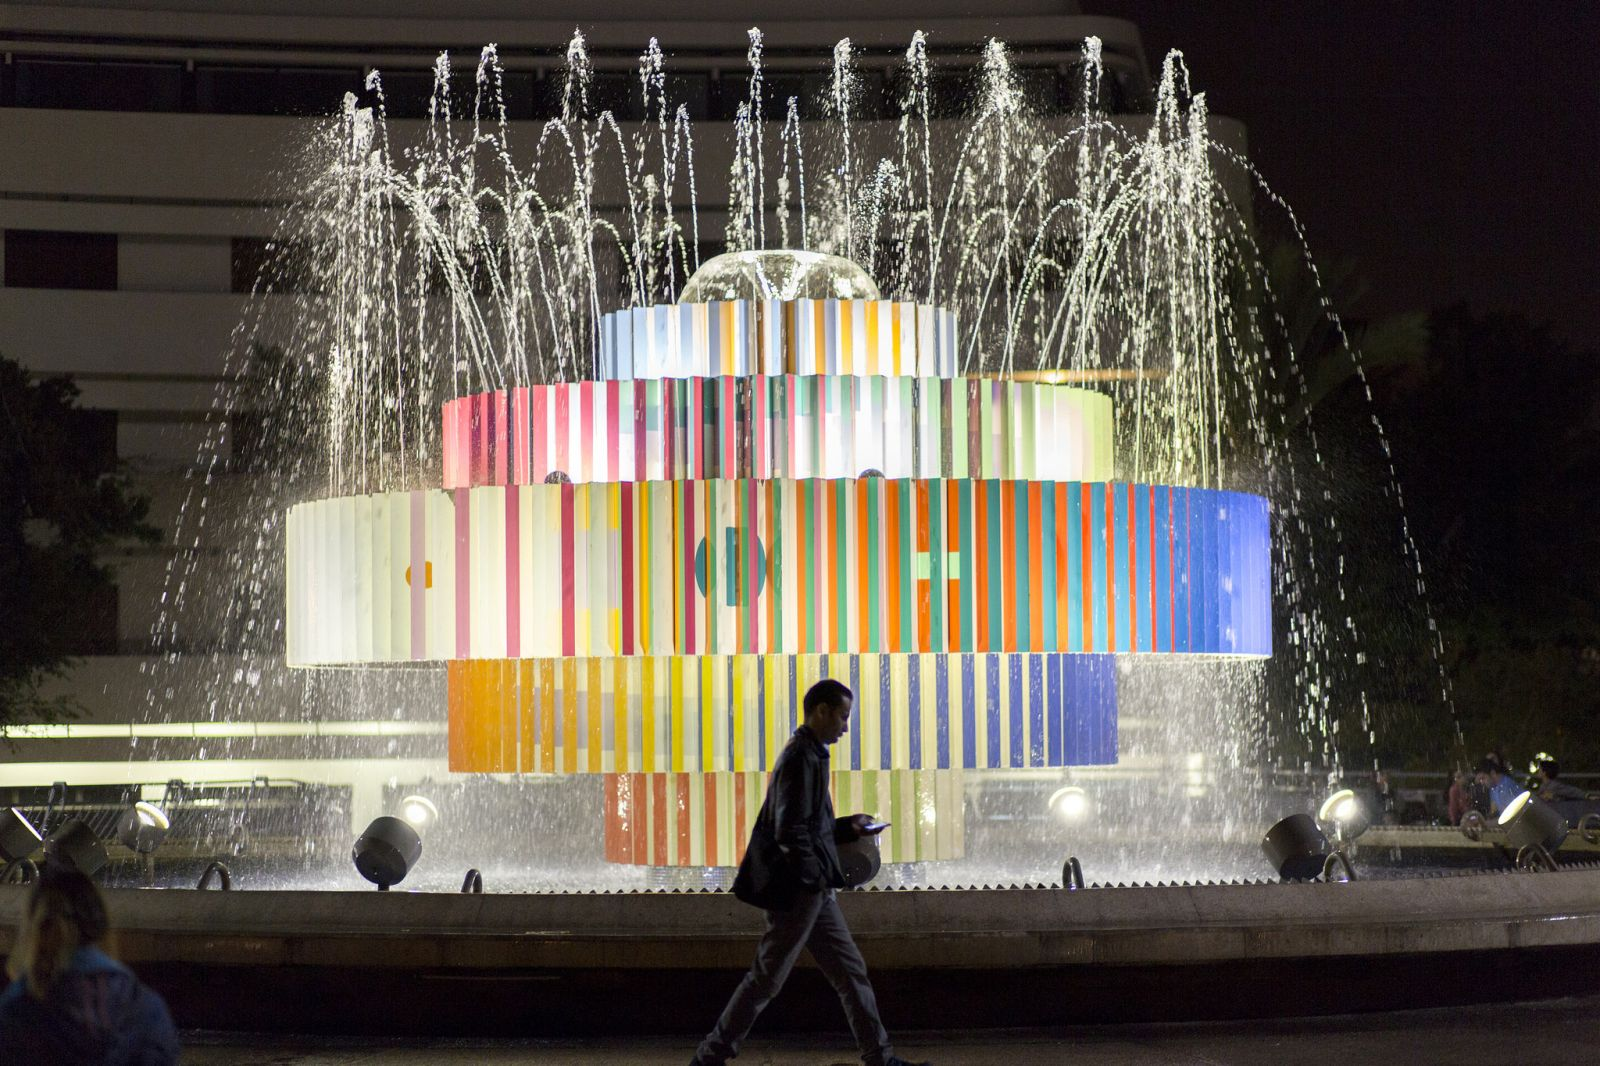 Artist Yaacov Agam designed the Fire & Water Fountain in Tel Aviv's Dizengoff Square. Photo by Linneah Anders